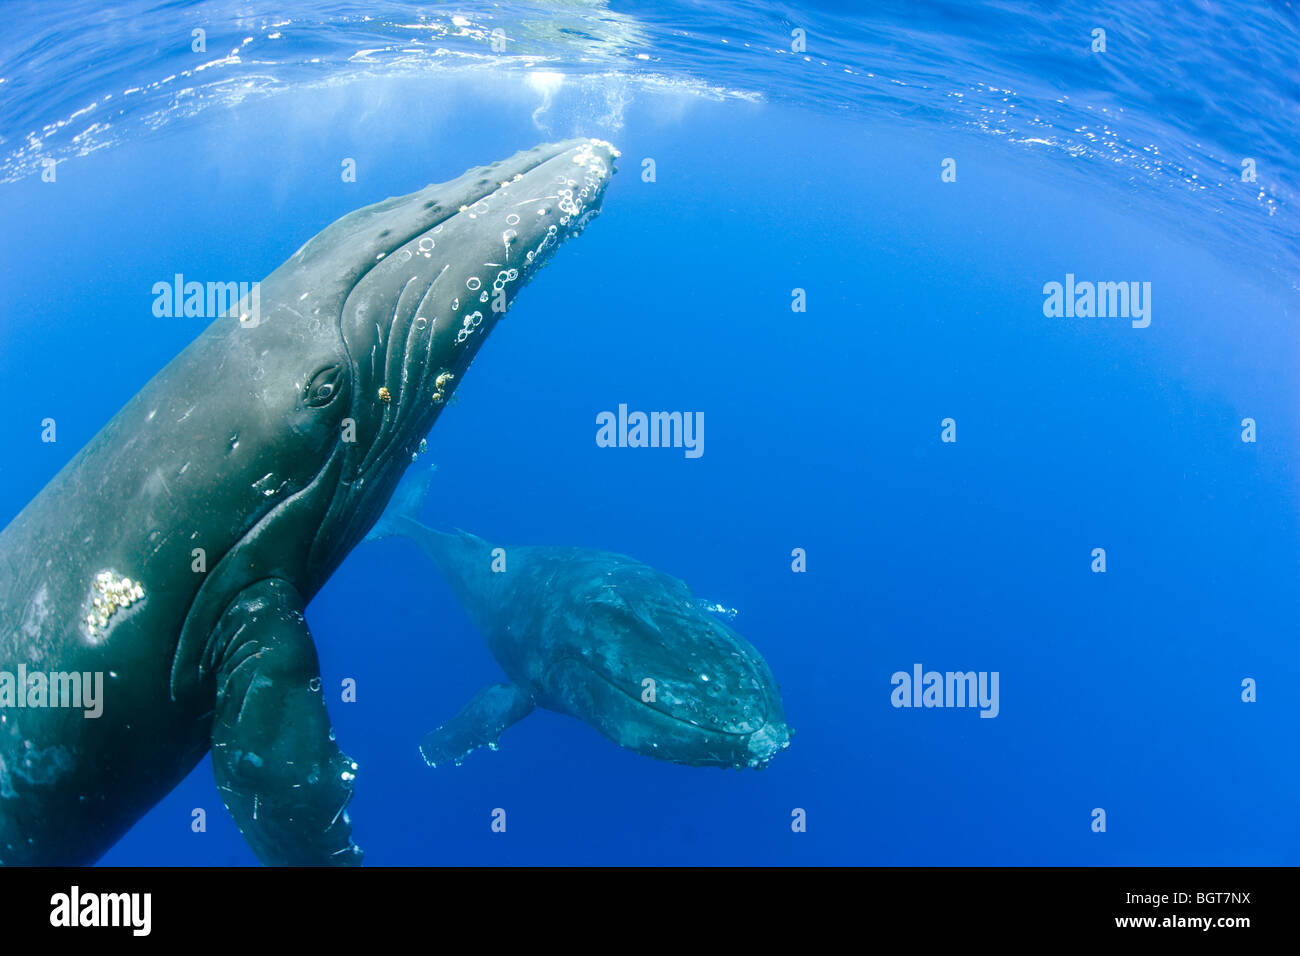 humpback whales underwater in maui hawaii swimming up to whale watching boat - Stock Image